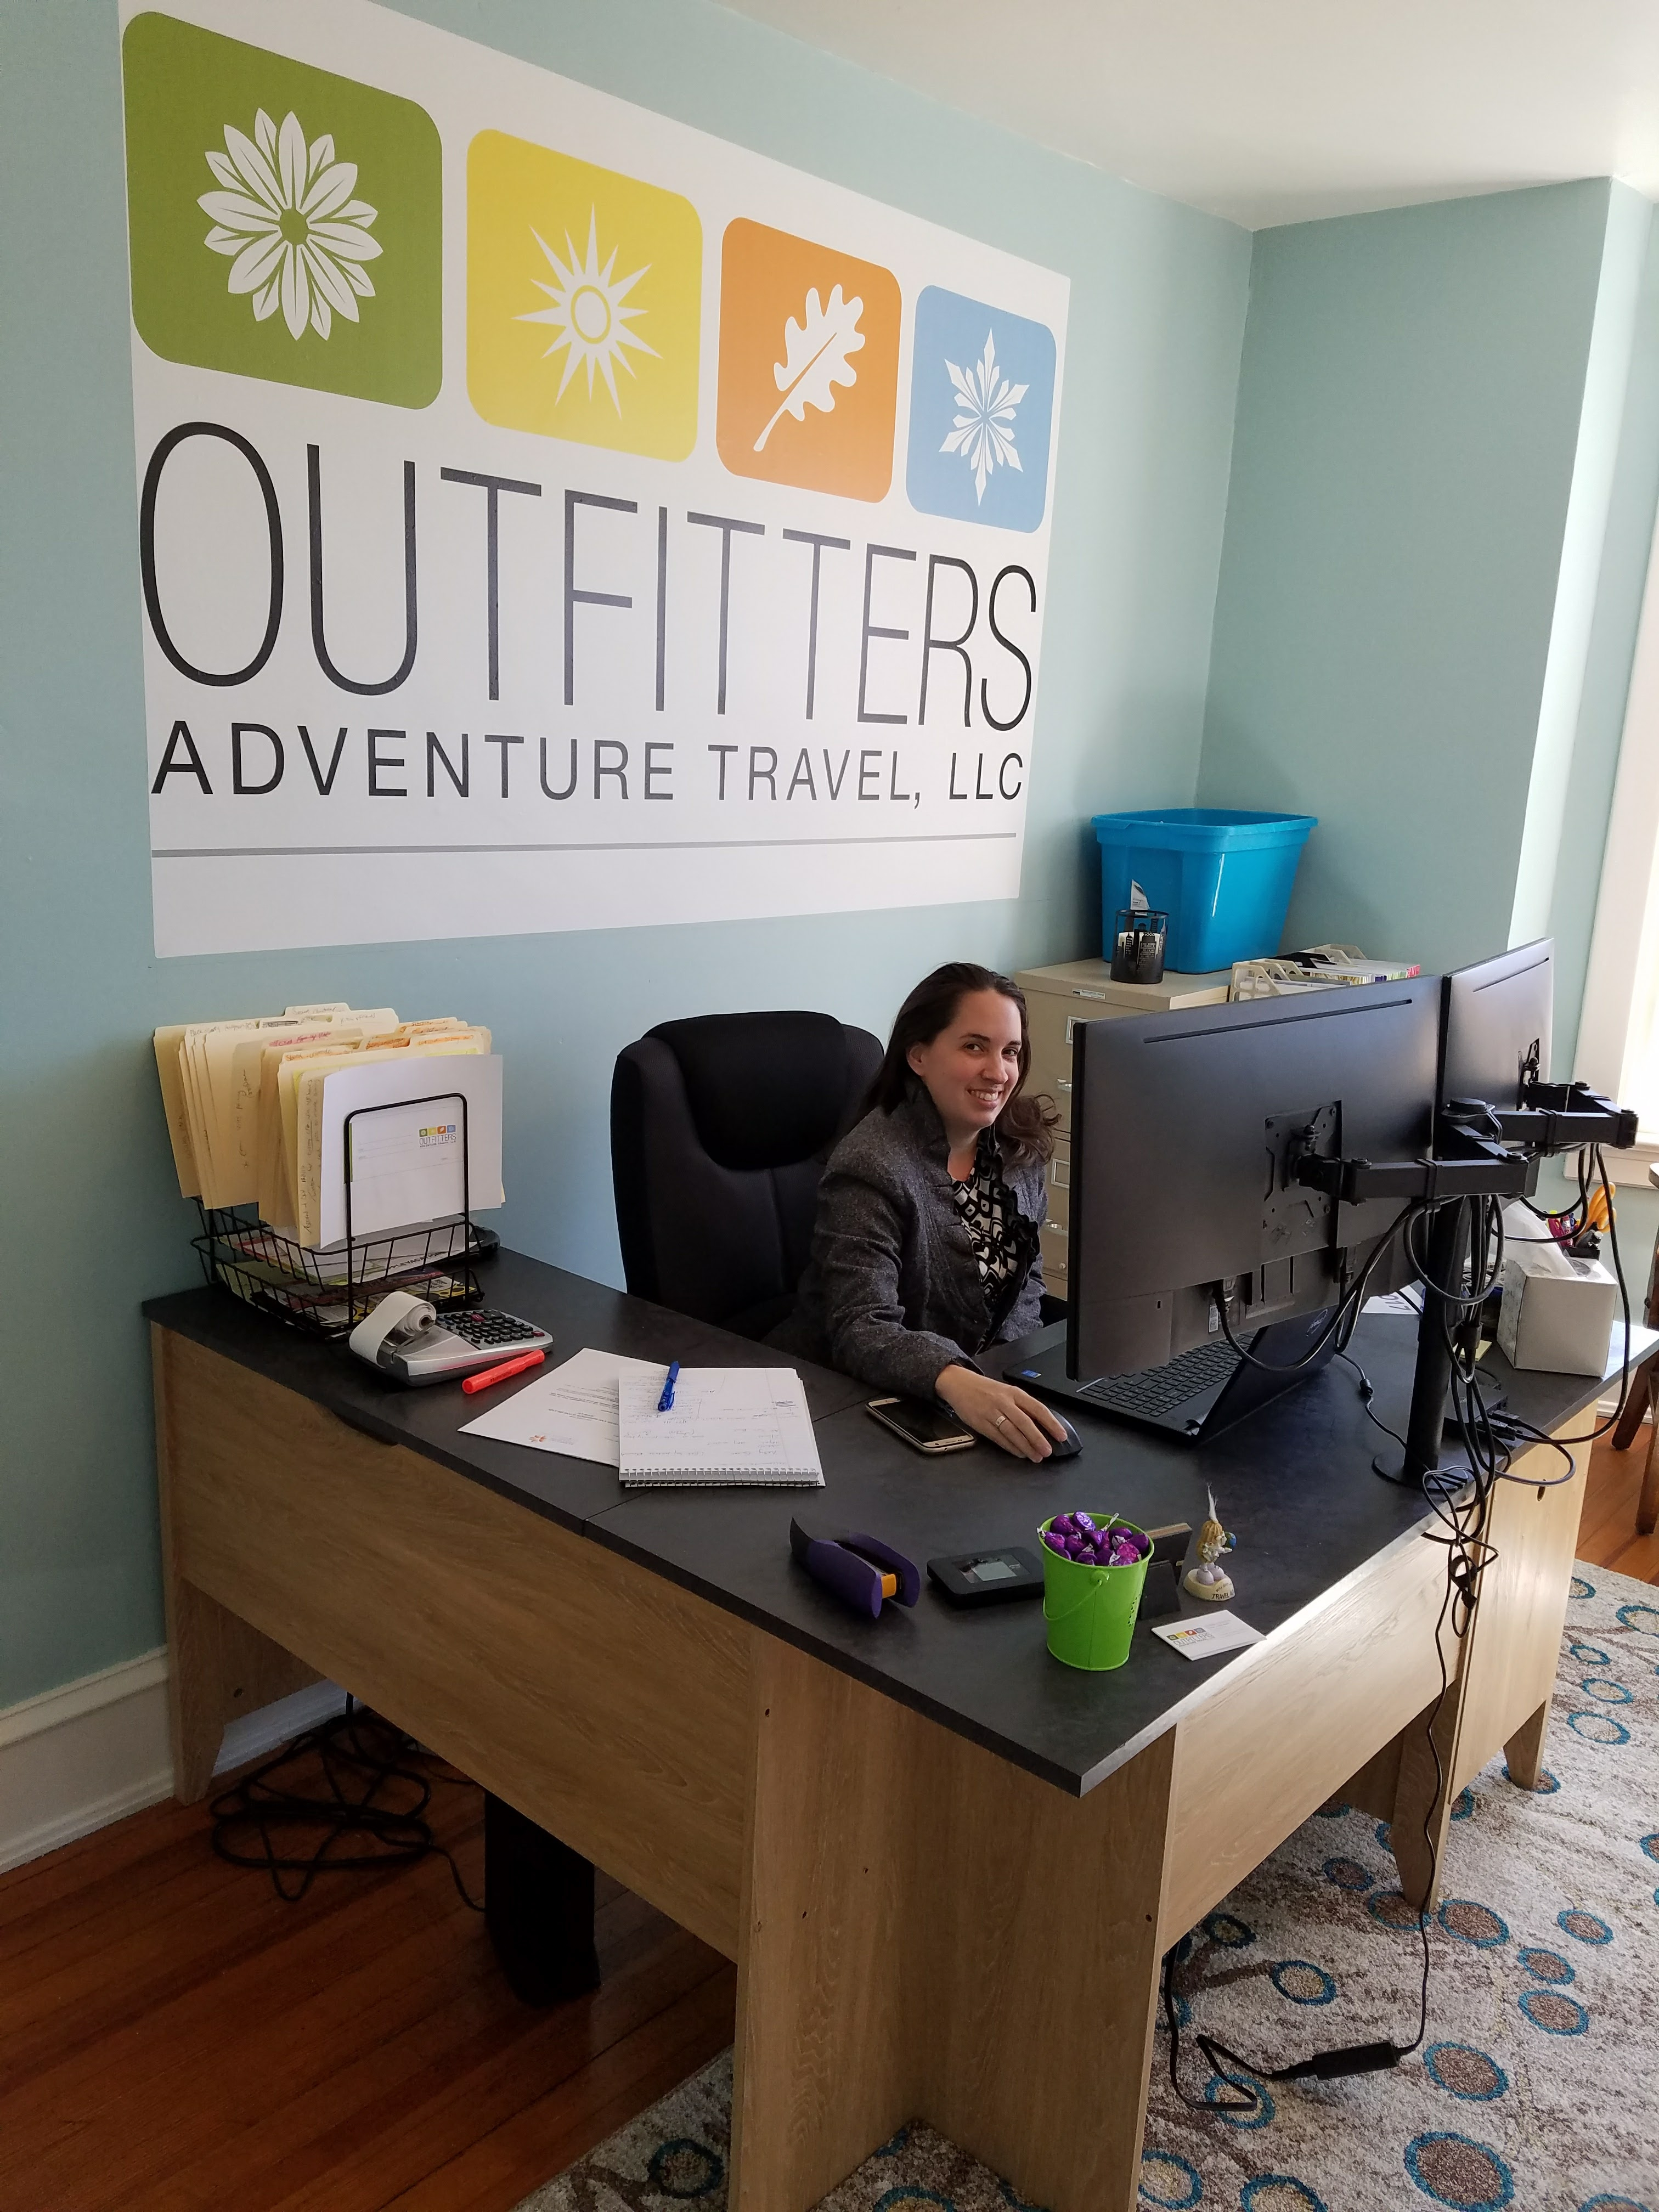 Outfitters Adventure Travel Llc Coupons Near Me In